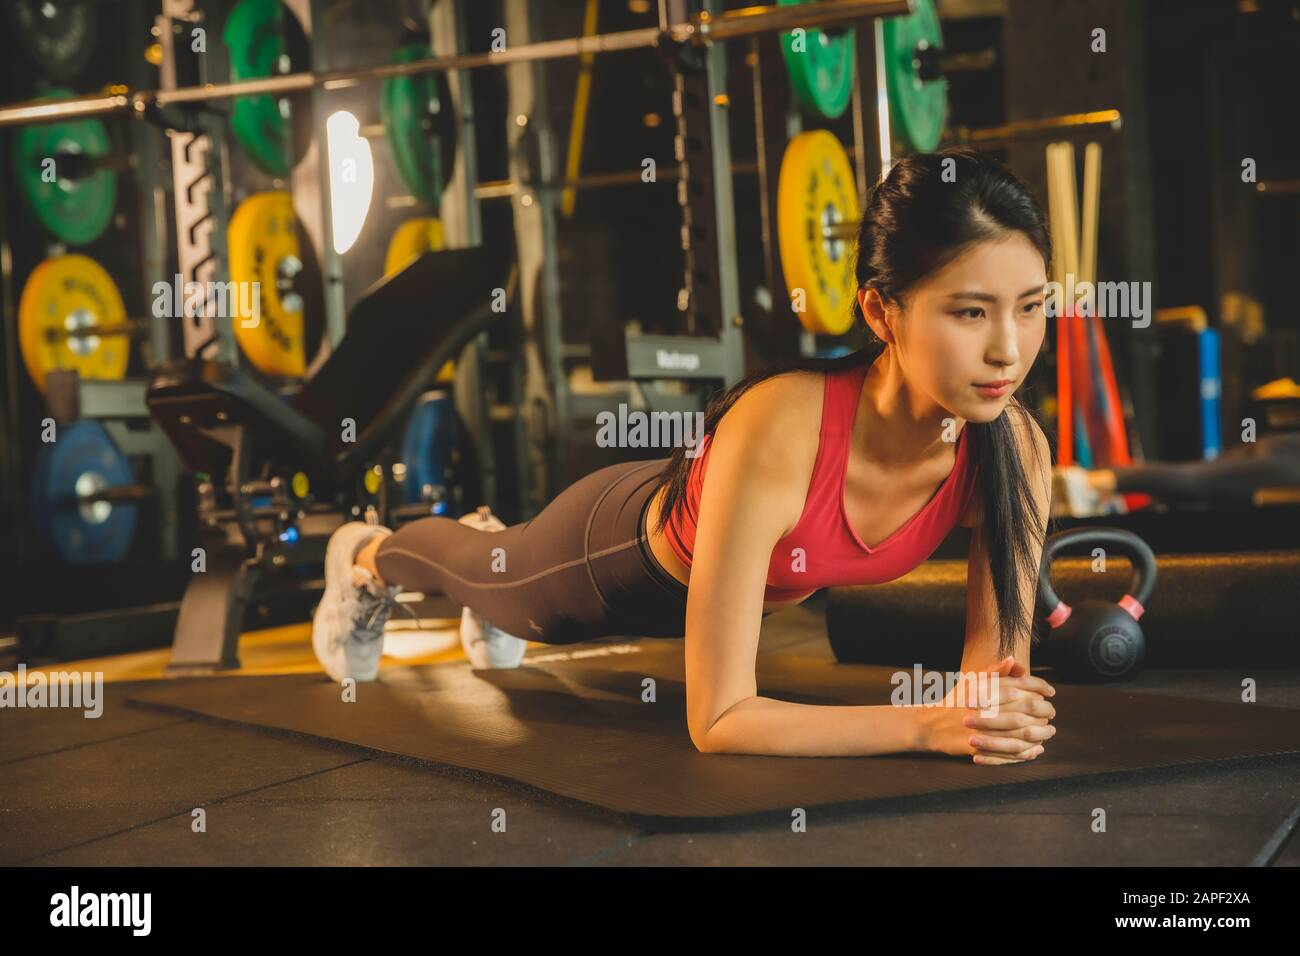 Male and female exercising in gym. Sport, fitness, weightlifting and training concept 084 Stock Photo